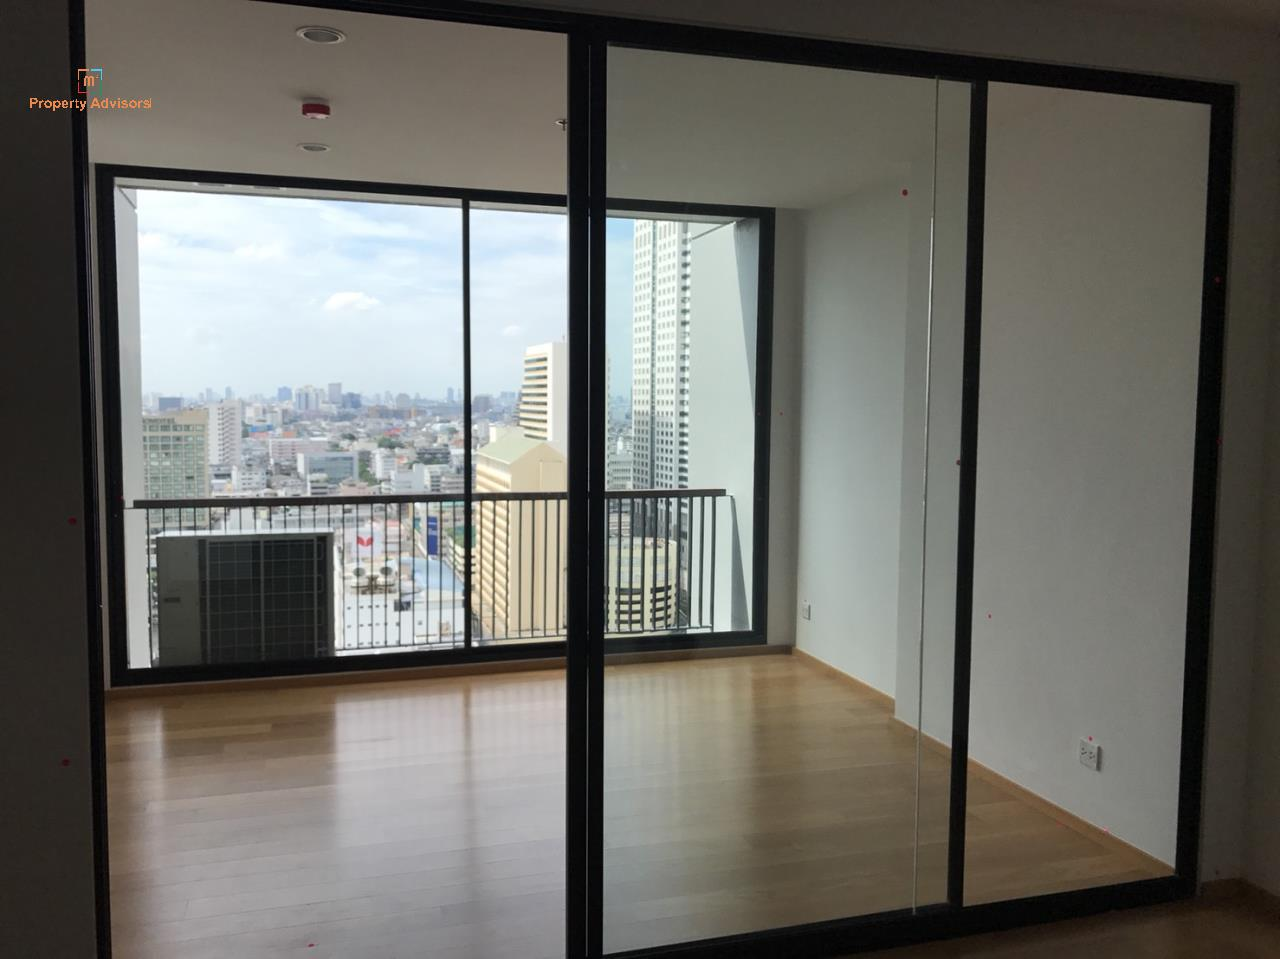 m2 Property Advisors Agency's Noble Revo Silom - New Super High floor room 5